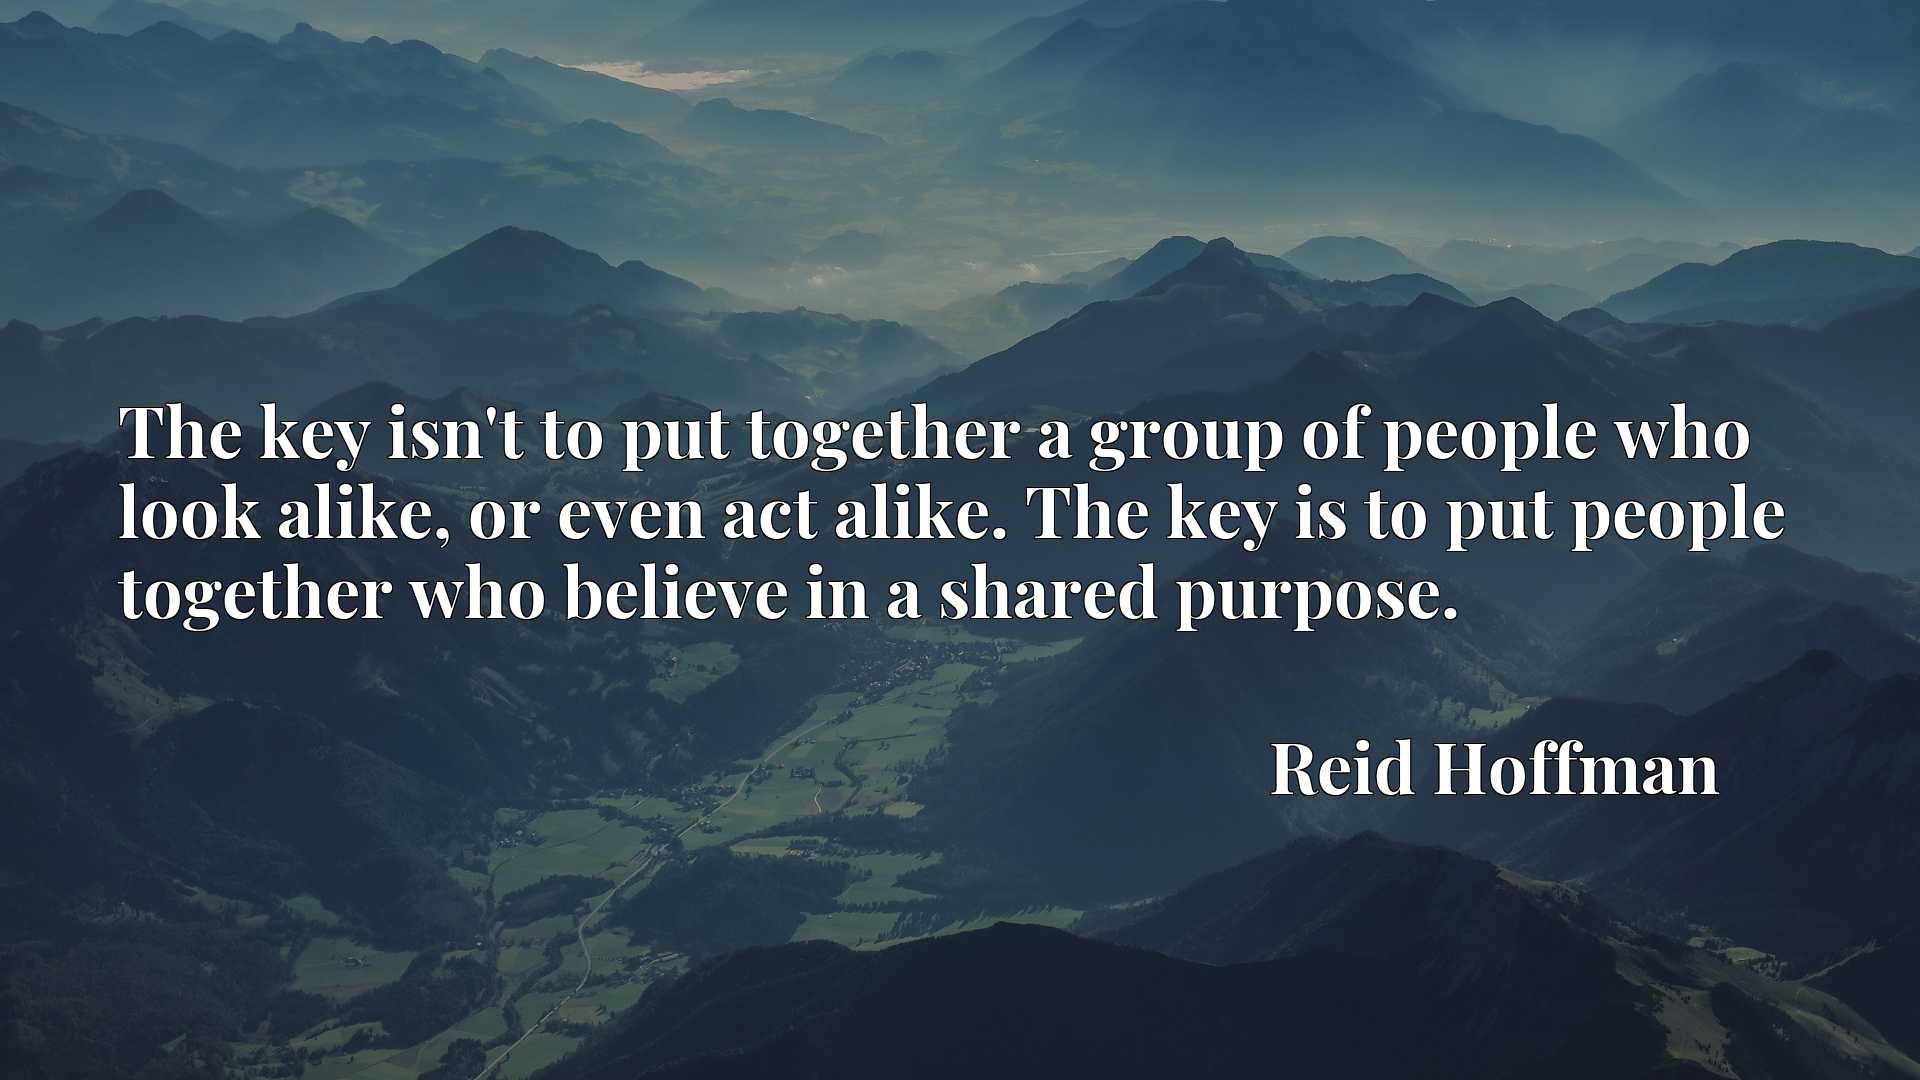 The key isn't to put together a group of people who look alike, or even act alike. The key is to put people together who believe in a shared purpose.